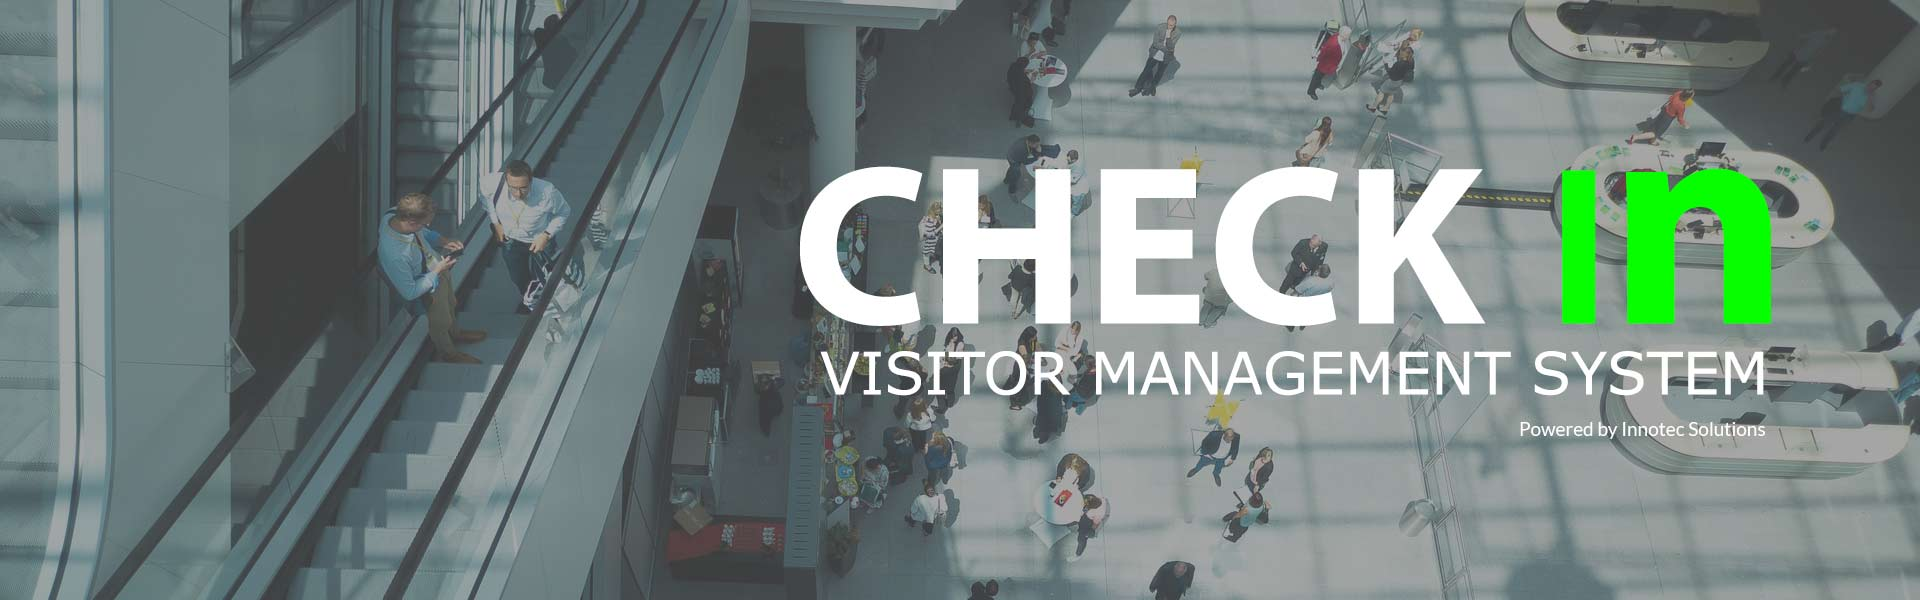 visitor management system check in security systems business buildings in singapore